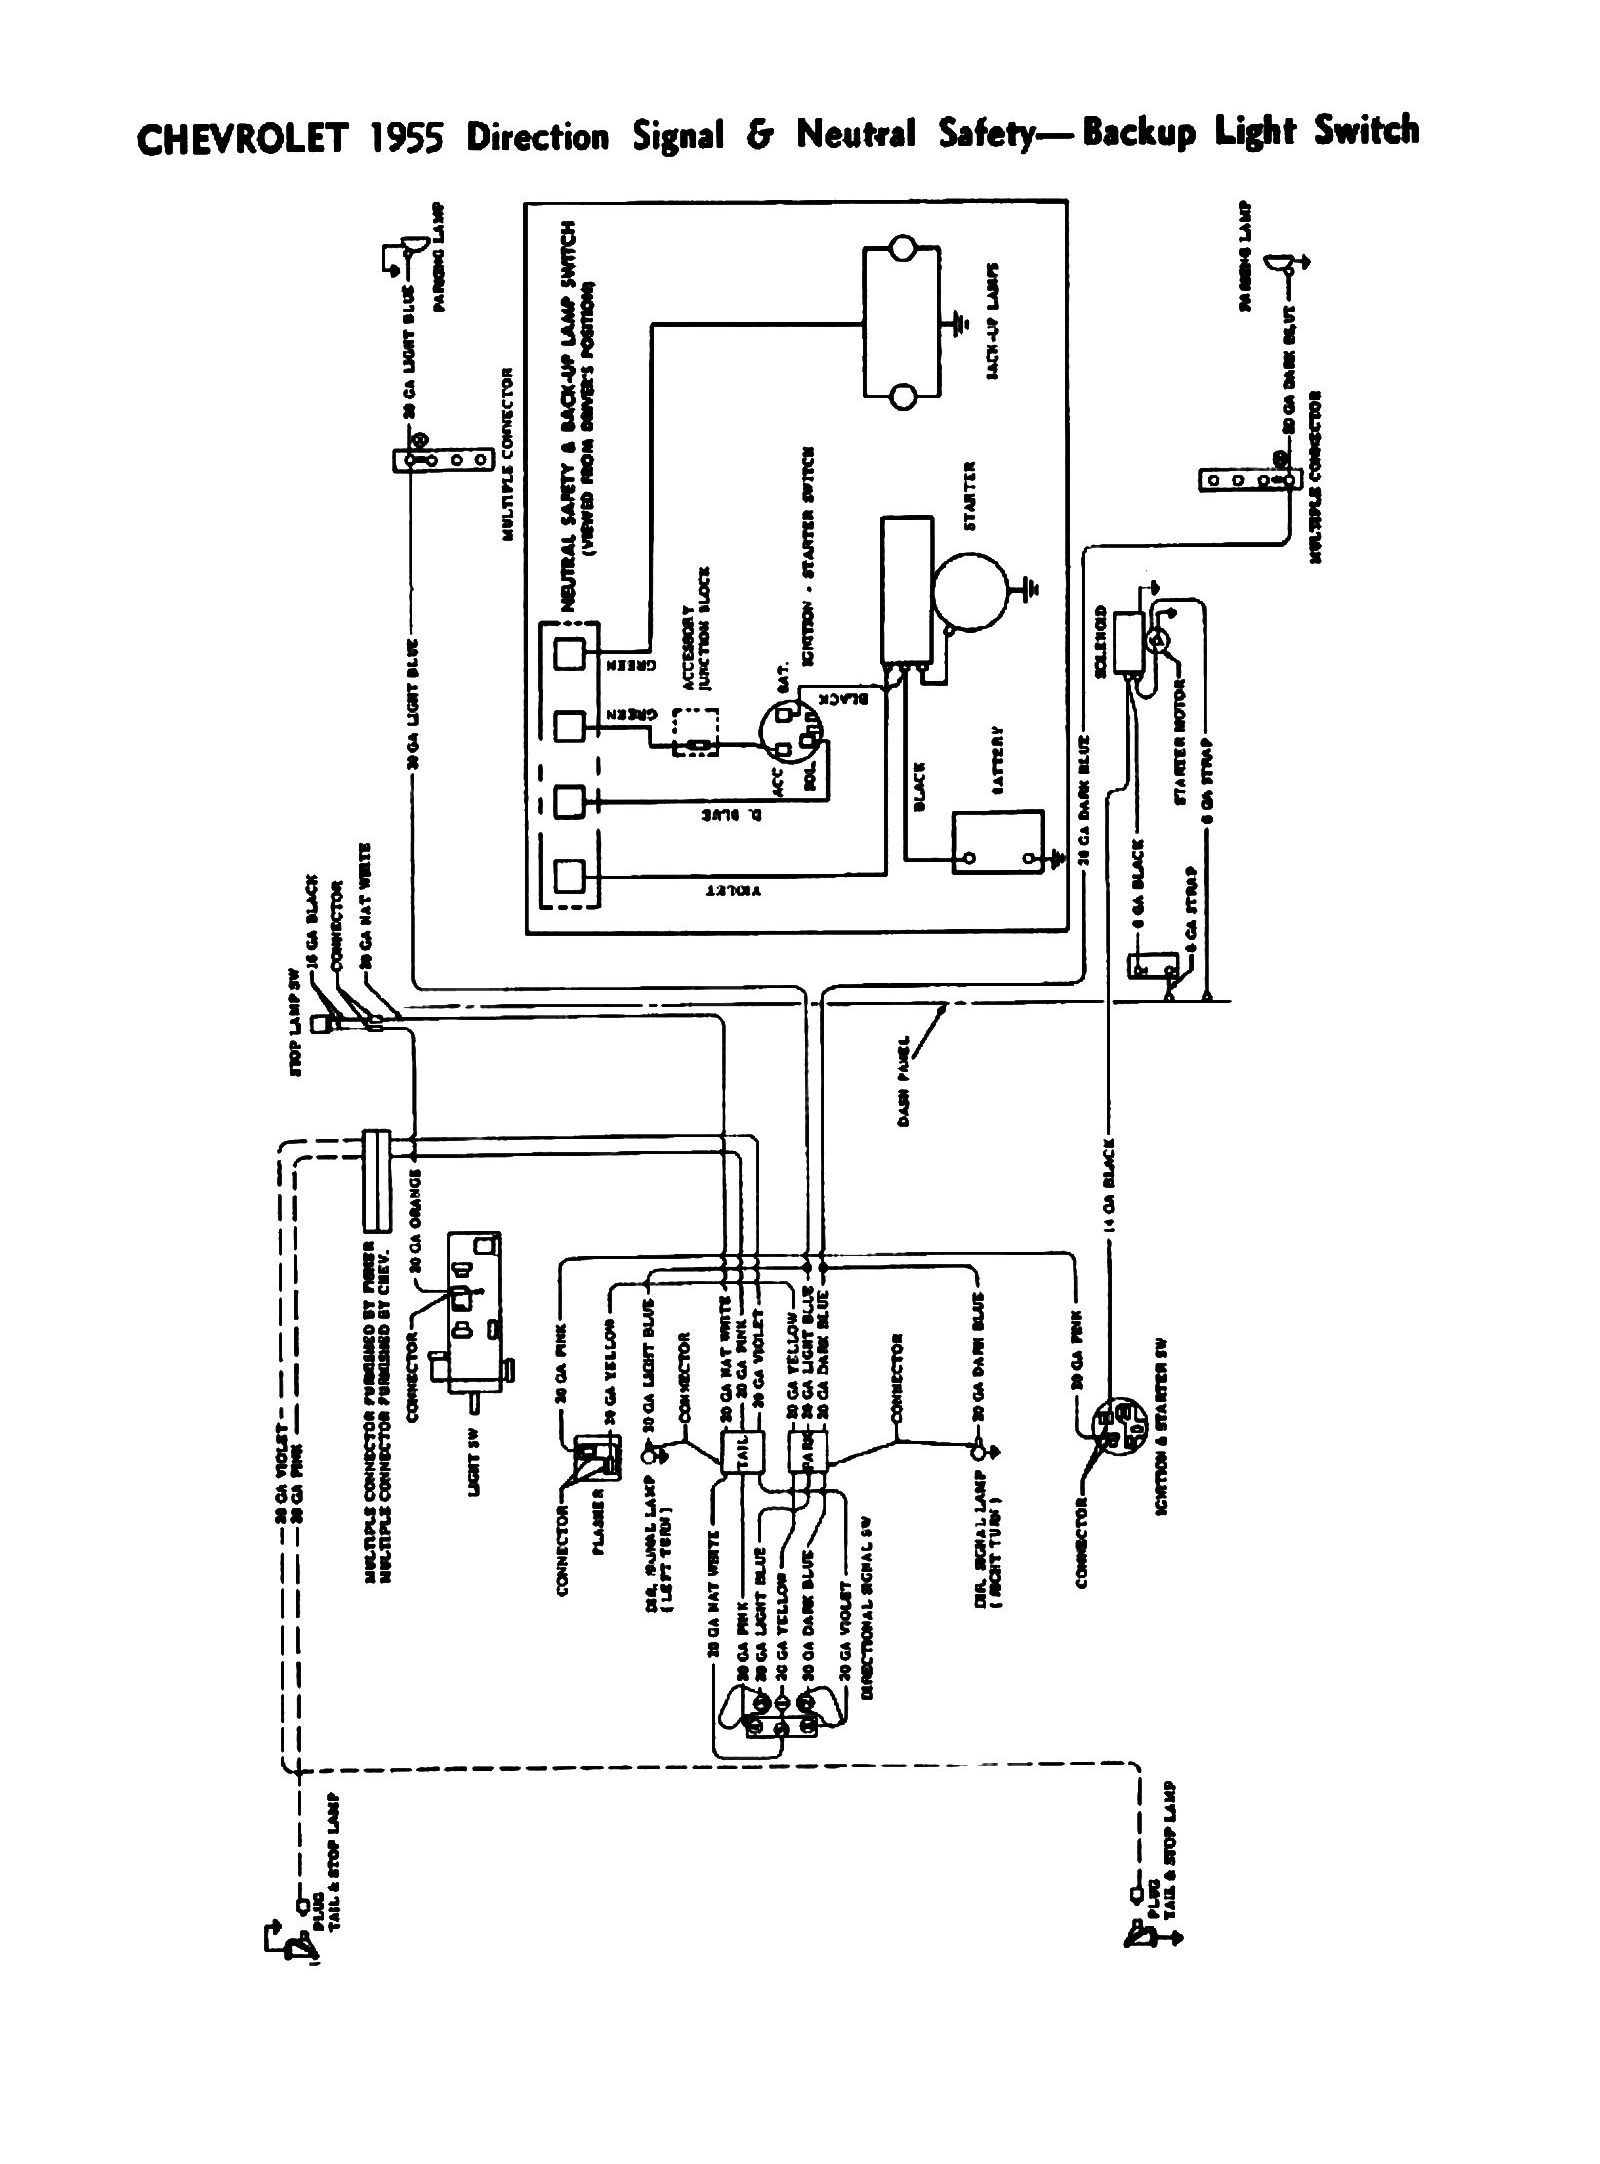 1955 Chevy Steering Column Wiring Acc Wiring Diagram Level Level Lionsclubviterbo It